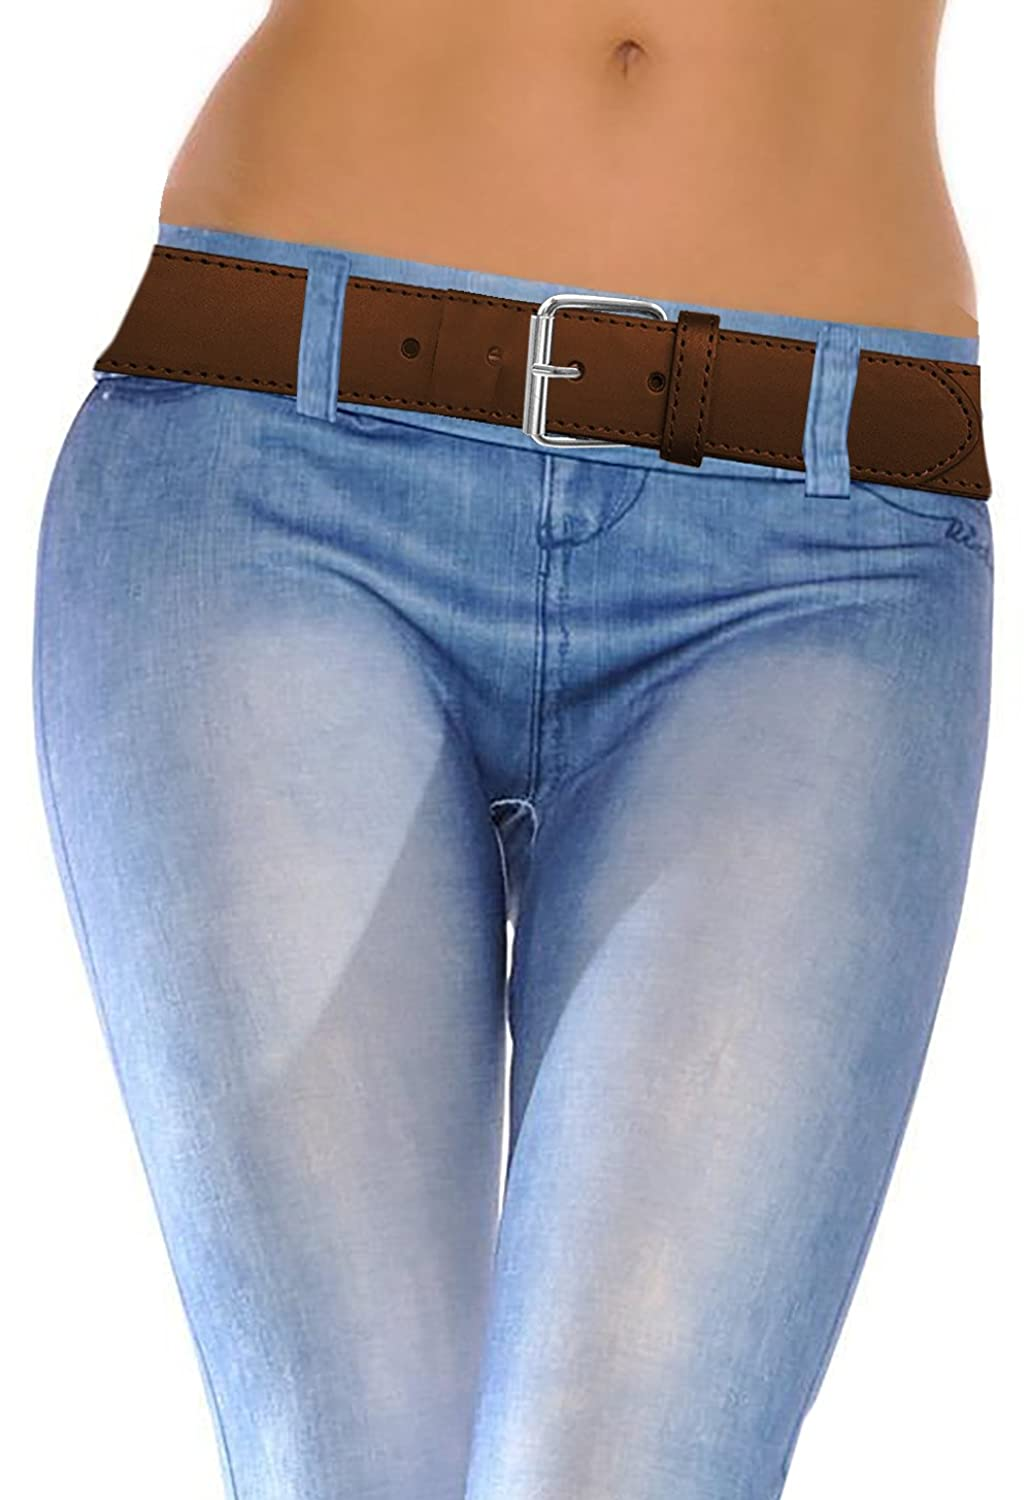 LUNA Top Quality Snap-On STITCH Silver Buckle Thick Wide Leather Belt - Brown - X Large